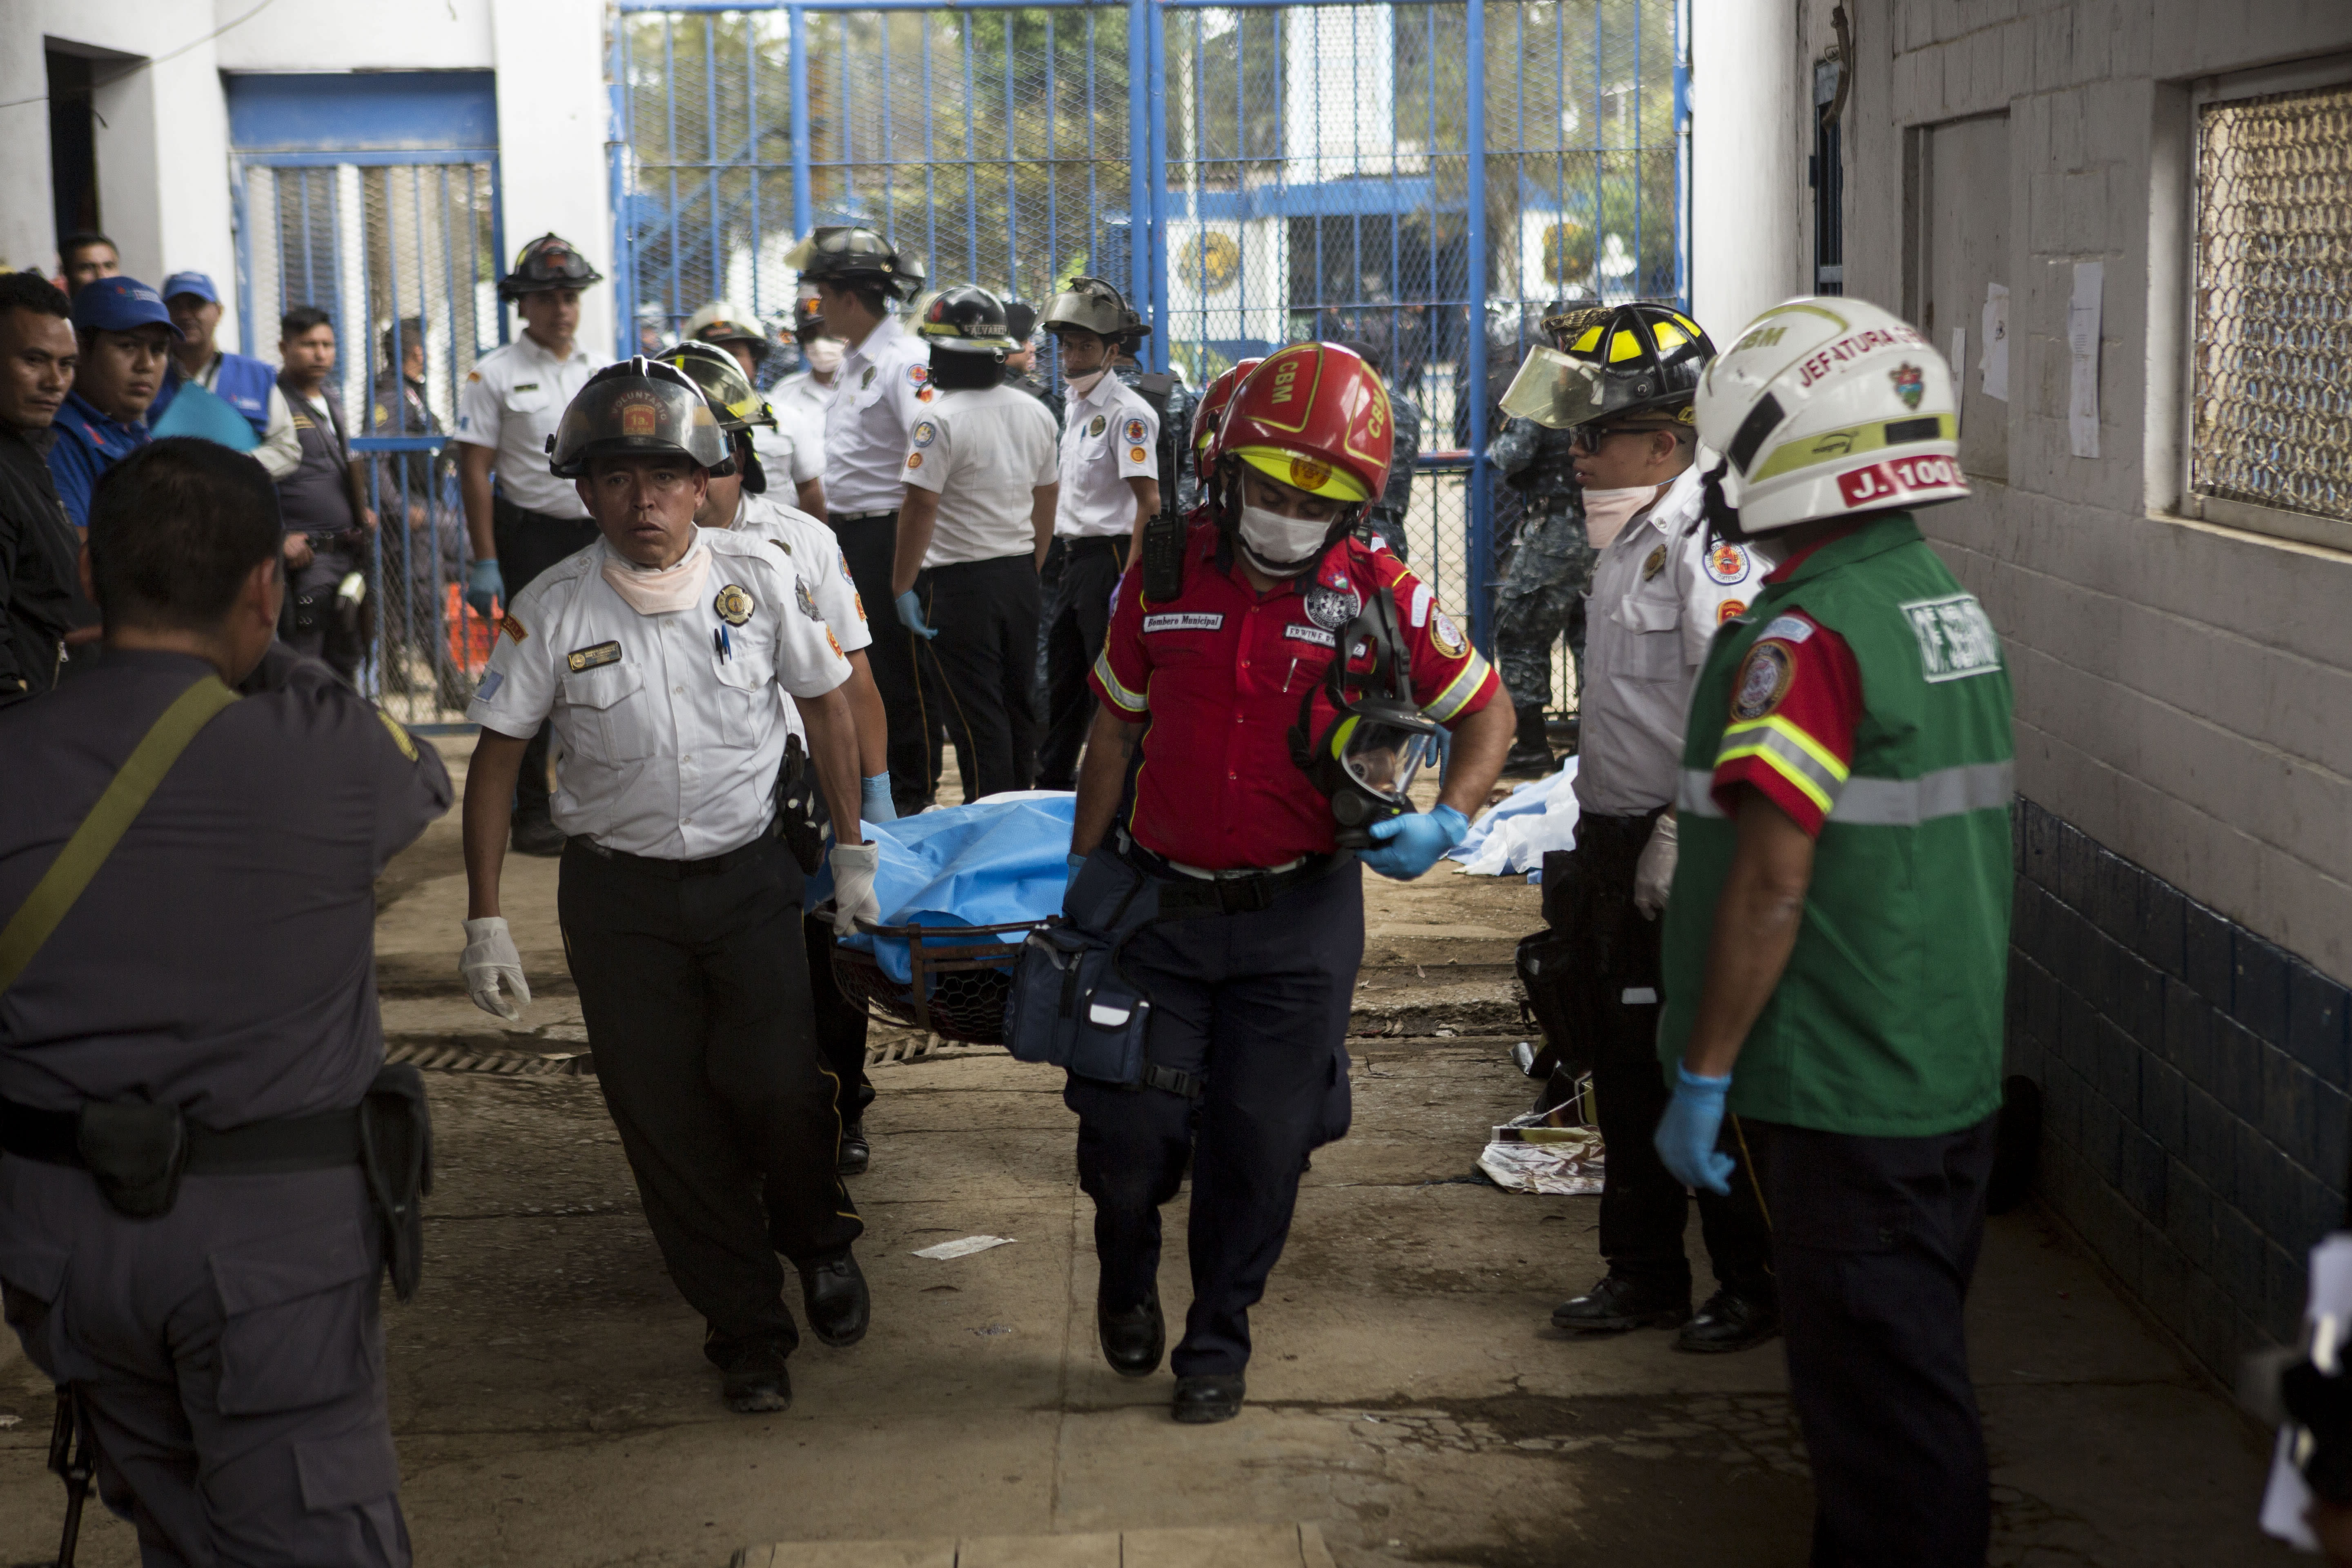 Firefighters carry the body of an inmate who died during a shooting inside the Pavon Rehabilitation Model Farm in Fraijanes, Guatemala, Tuesday, May 7, 2019. At least three people were killed and 10 people were wounded in the shooting, authorities said. (AP Photo/Oliver De Ros)